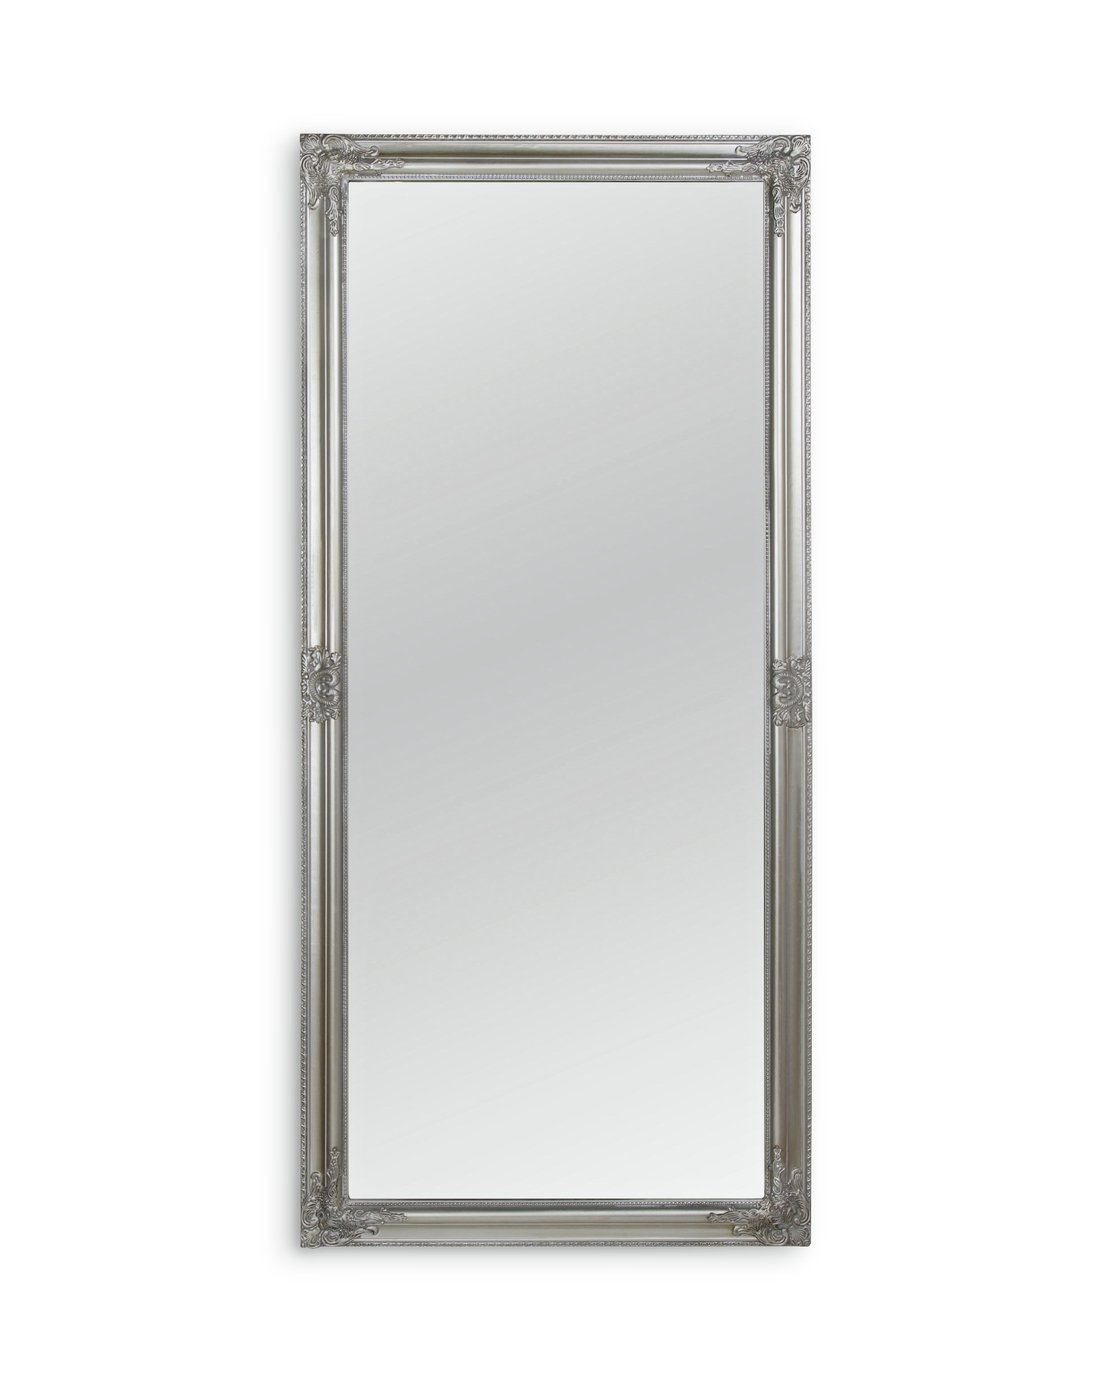 Argos Home Charlotte Rec Ornate Leaning Mirror - Silver